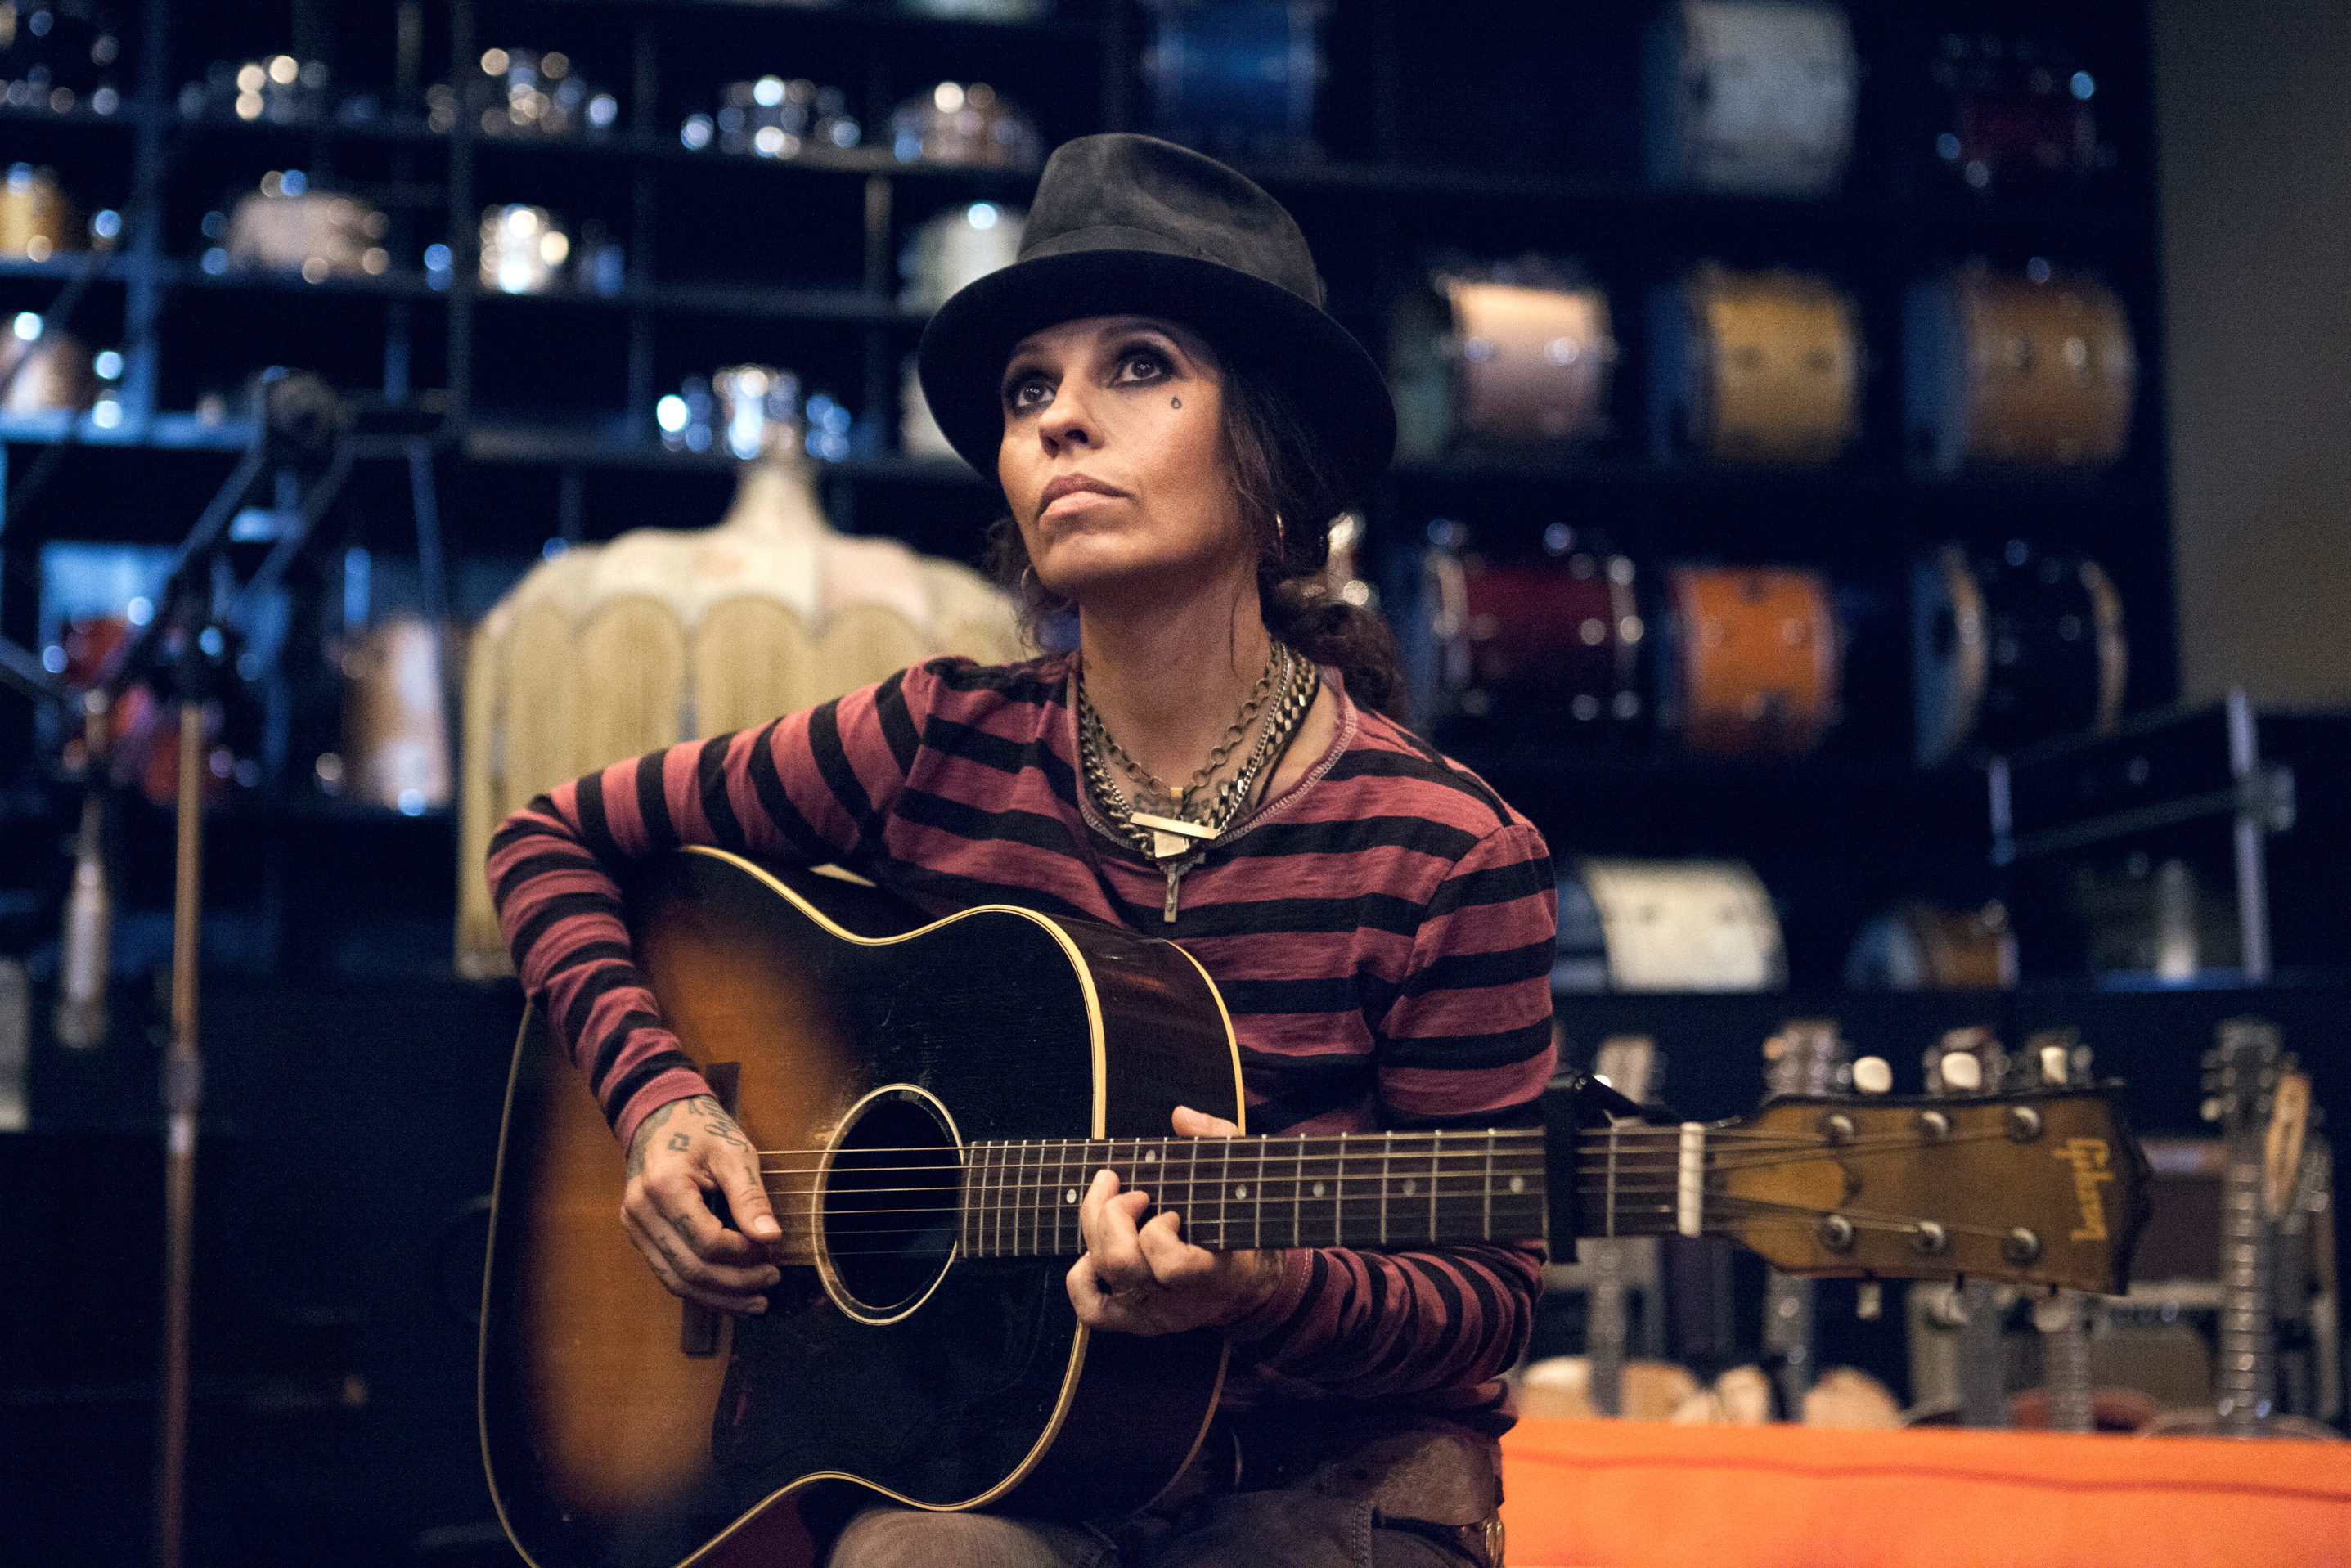 Who is linda perry dating now